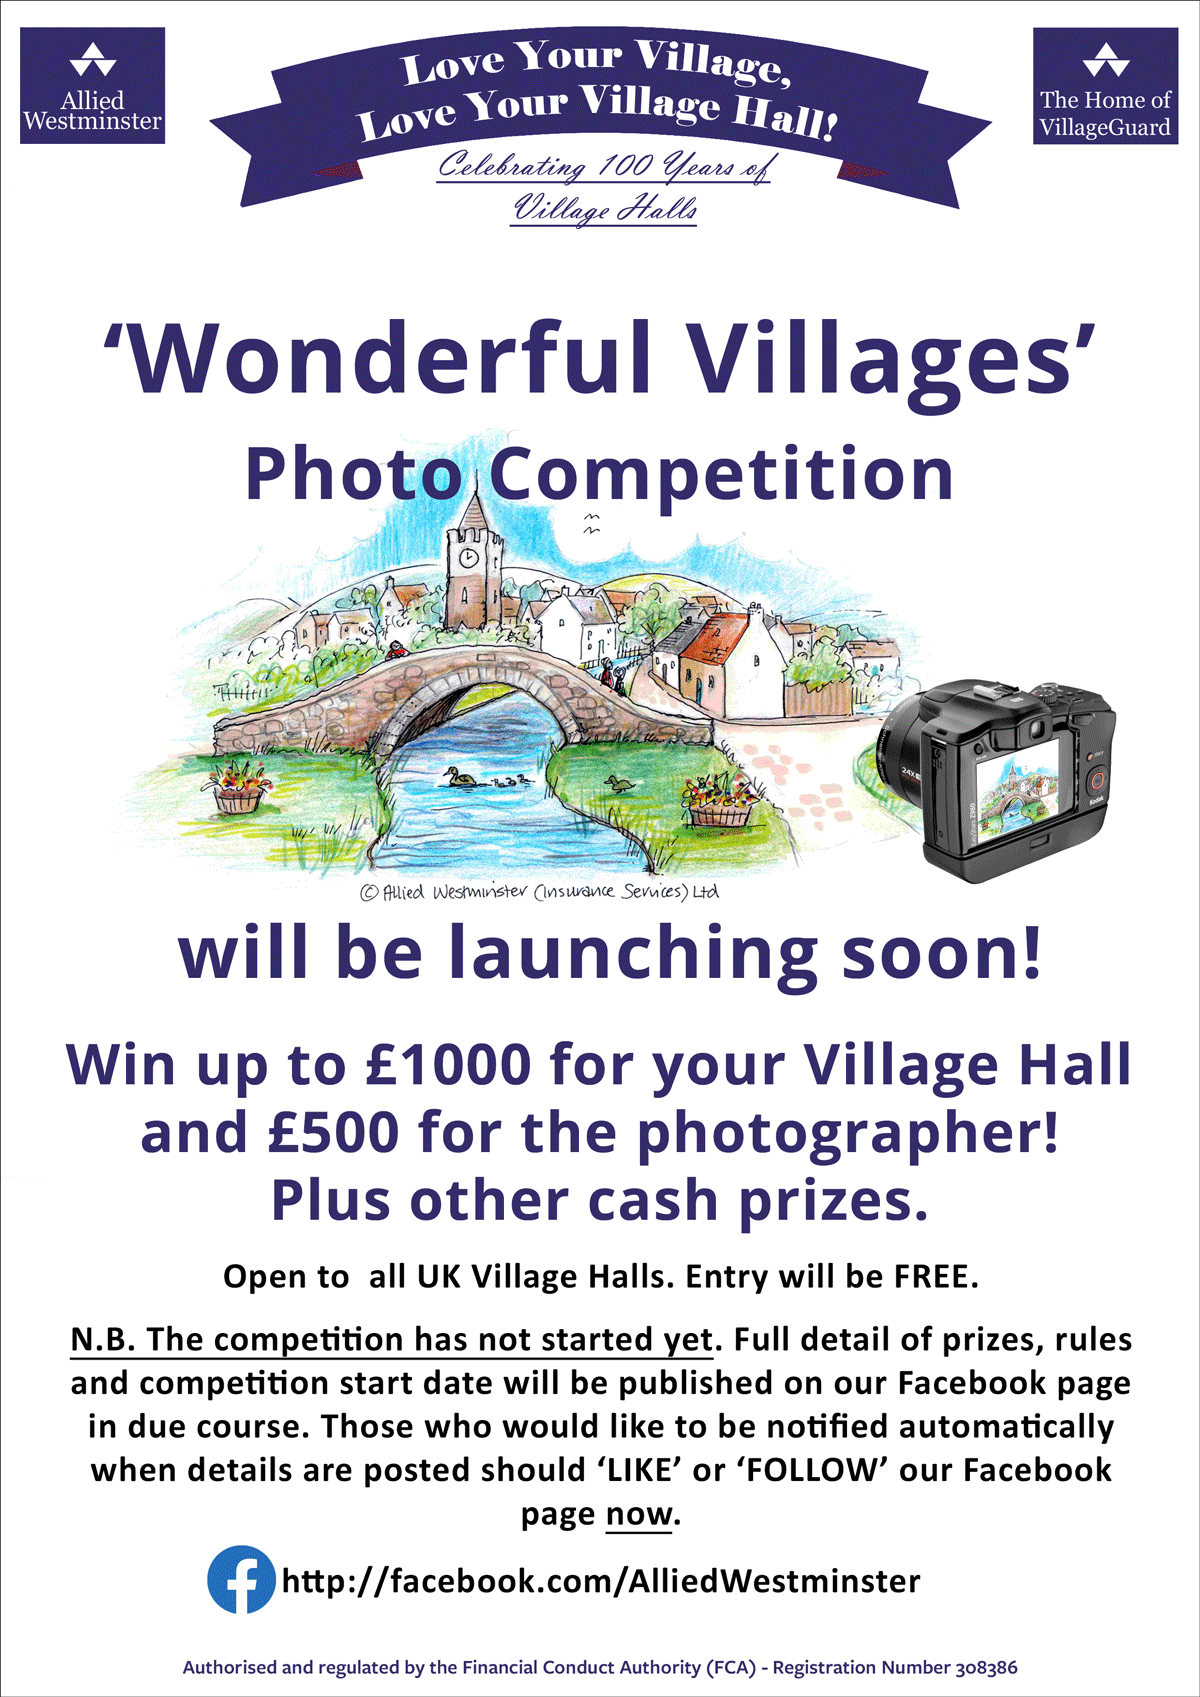 HOT OFF THE PRESS COULD YOUR VILLAGE HALL USE £1000